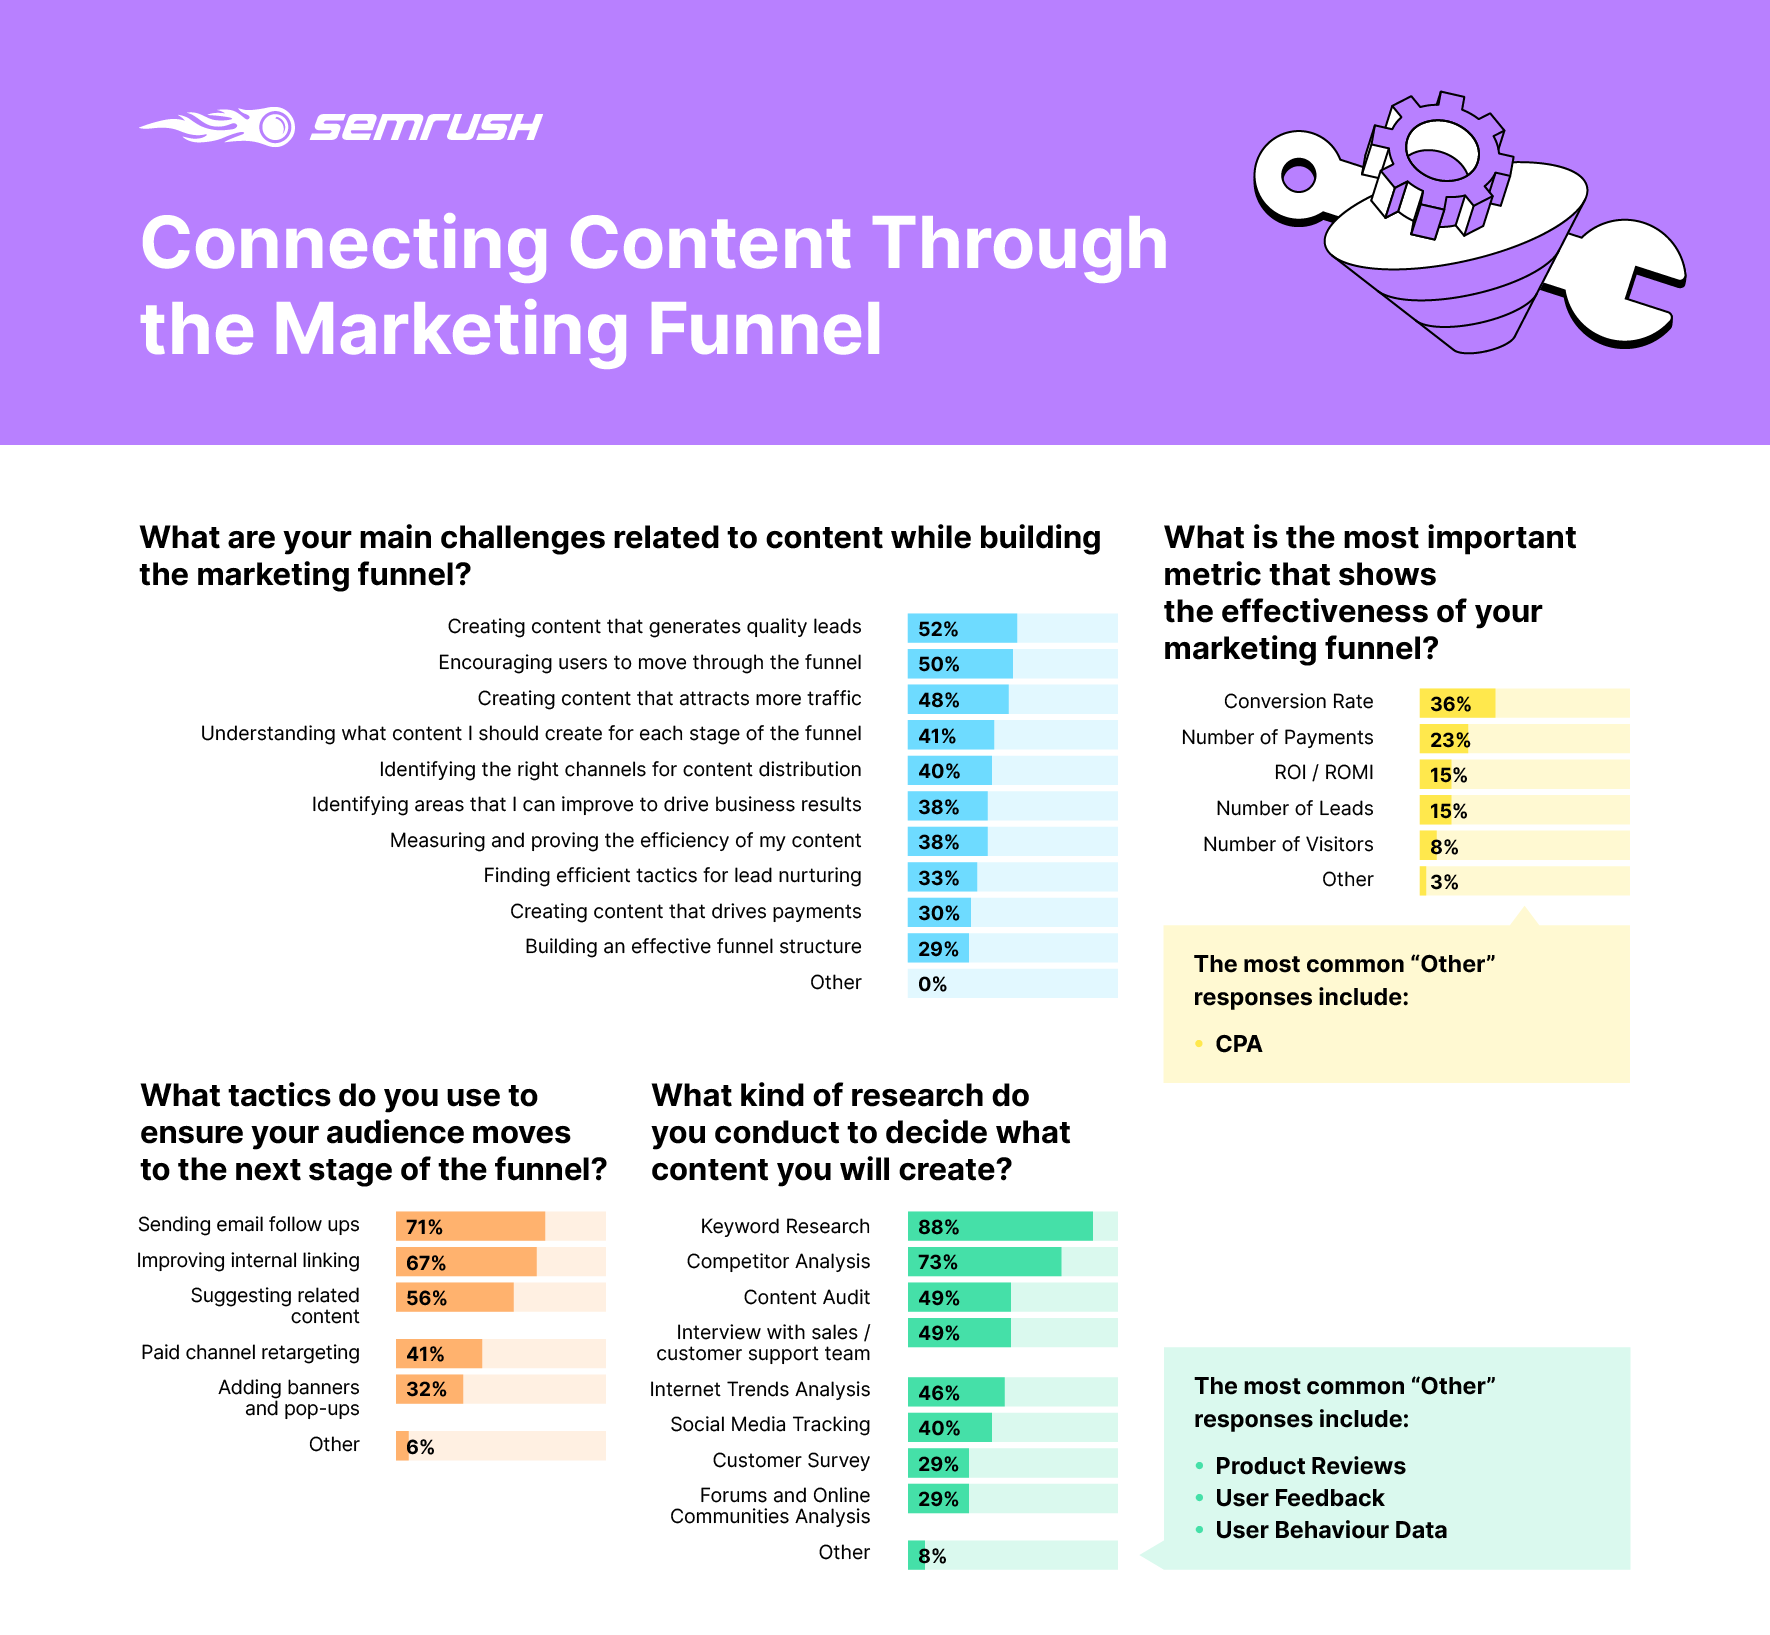 How marketers connect content through the funnel